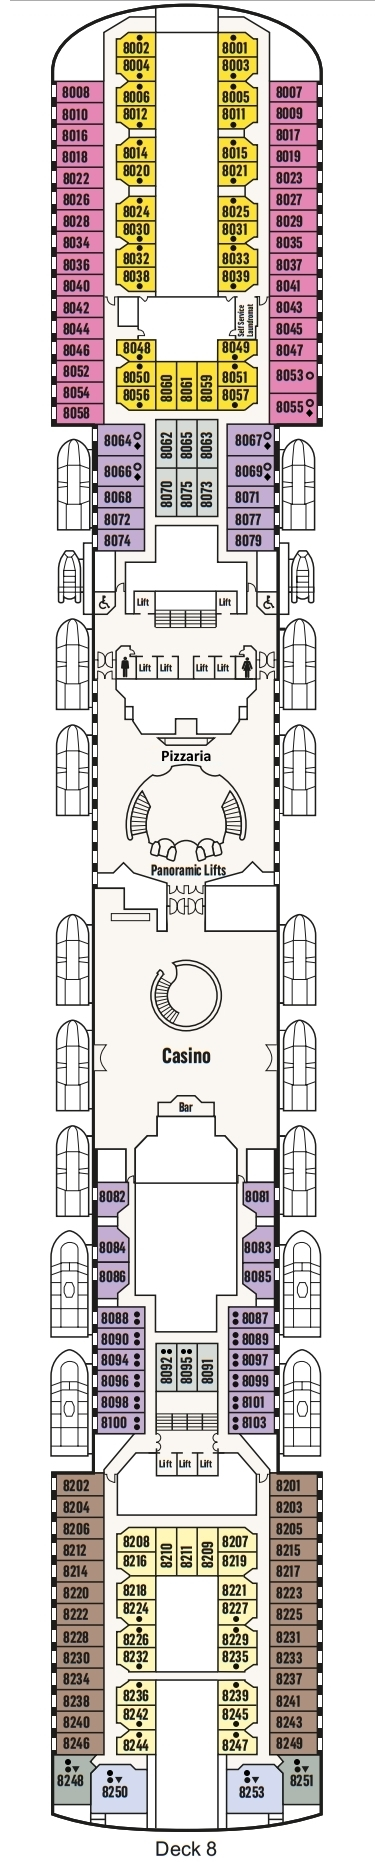 P&O - Pacific Explorer Deck 8 layout